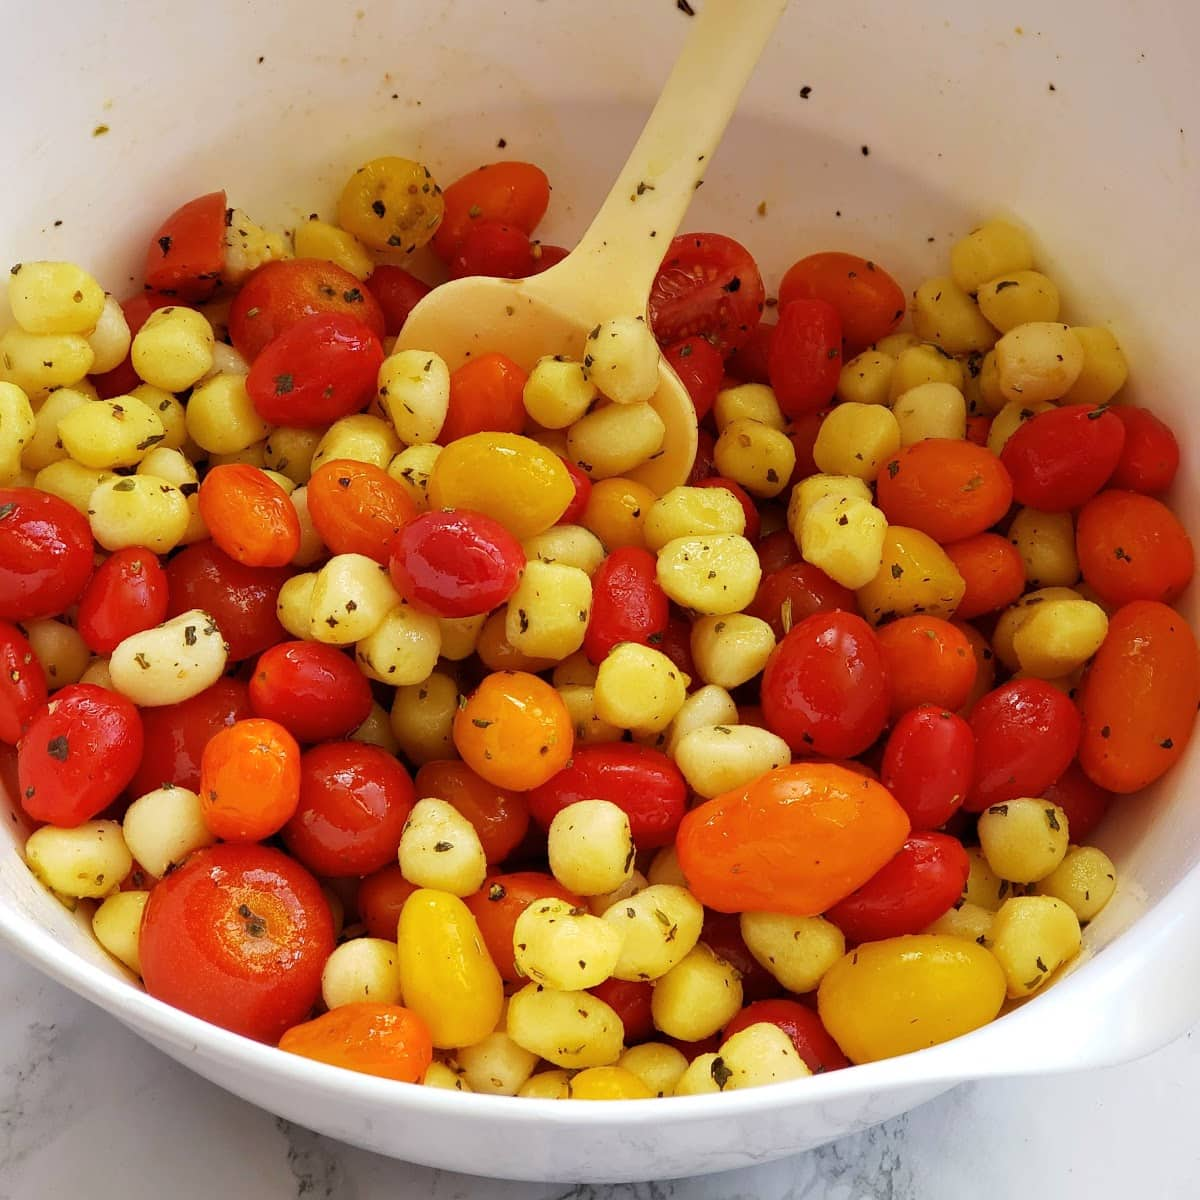 Tomatoes, Gnocchi and seasonings in a white mixing bowl